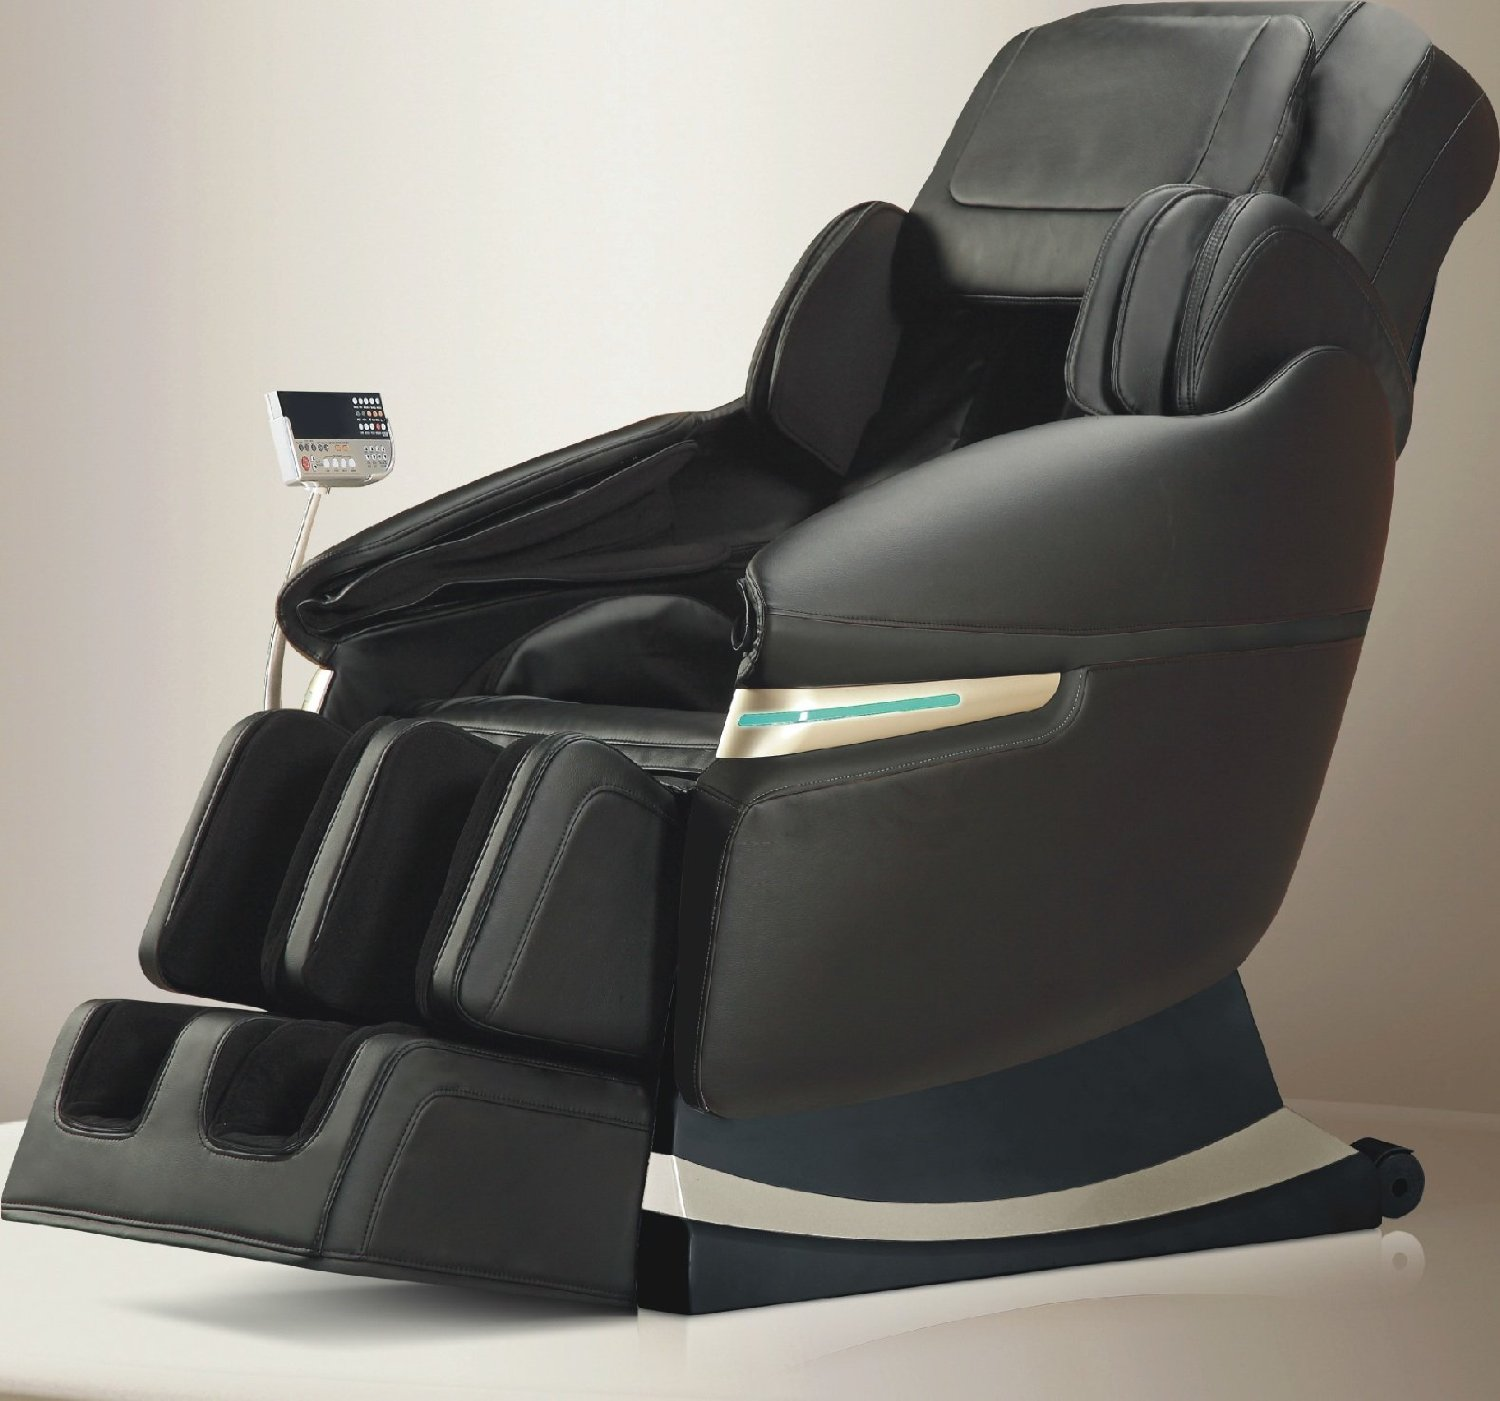 black massage chair suvs with captains chairs fujimi ep8800 promos